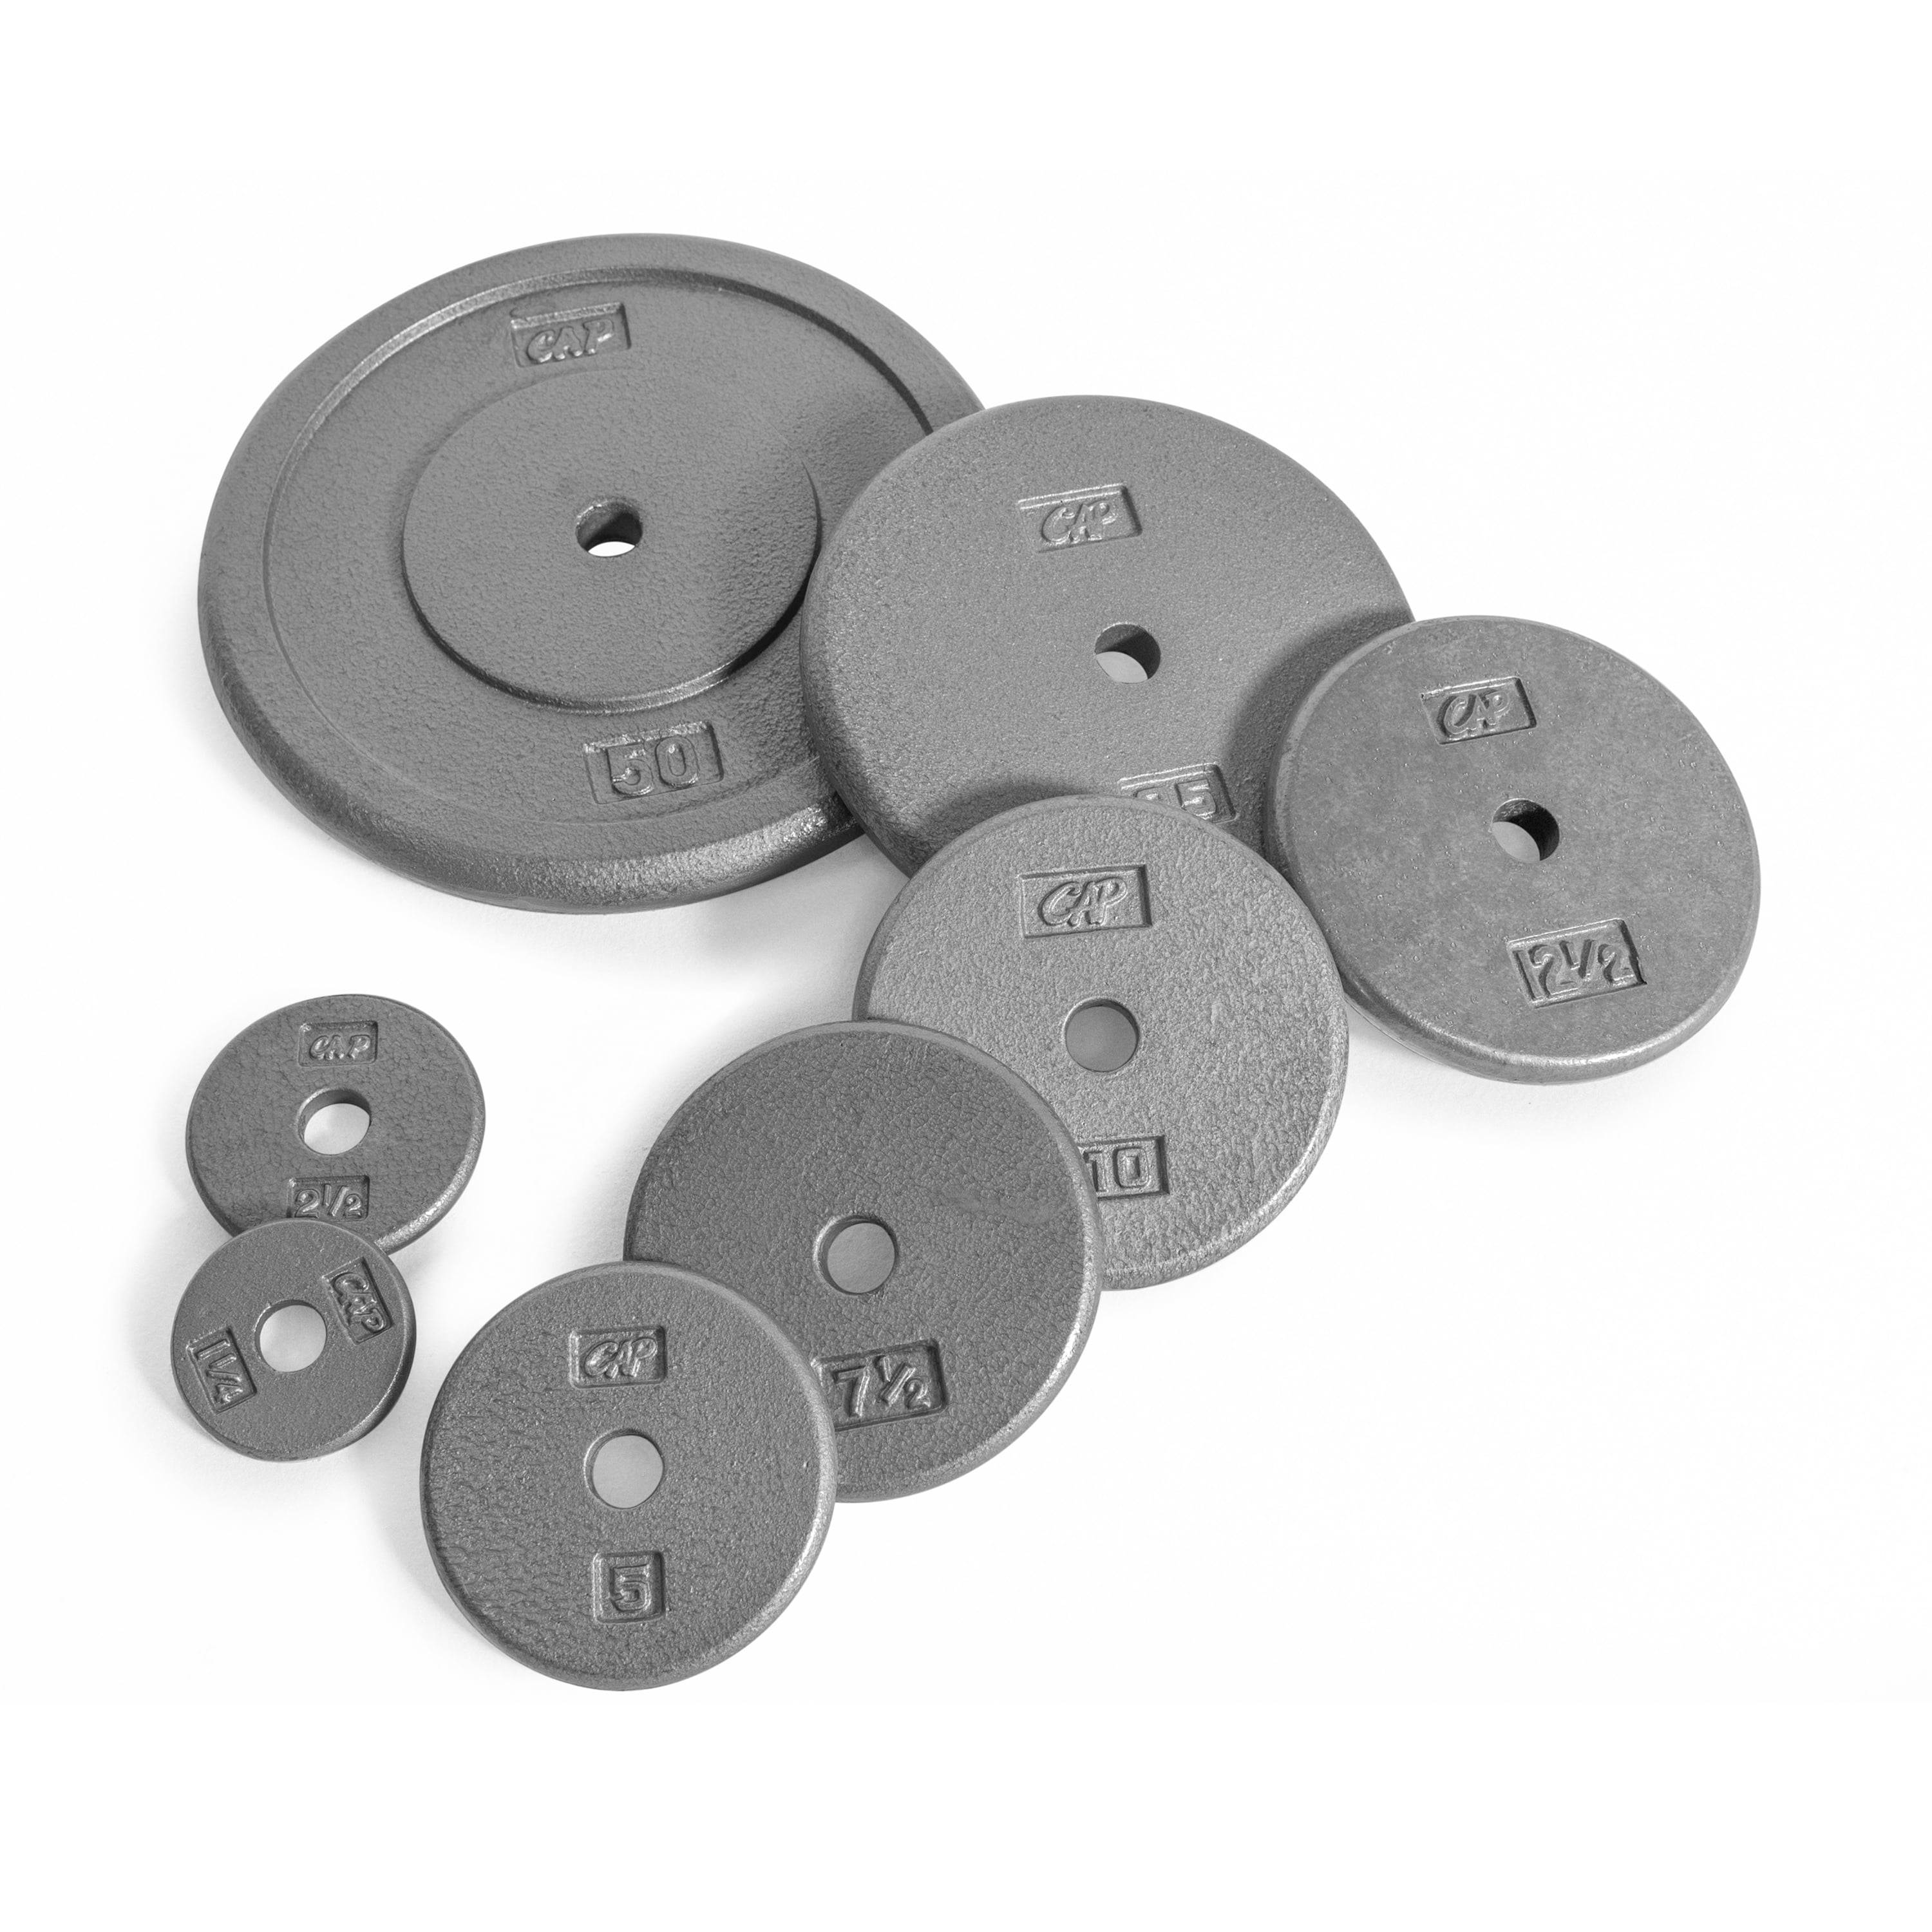 Cast Iron Weight Plates 1 inch Standard Fitness Disc Use with Barbell Curl Bar Dumbbells Weight Training Plates